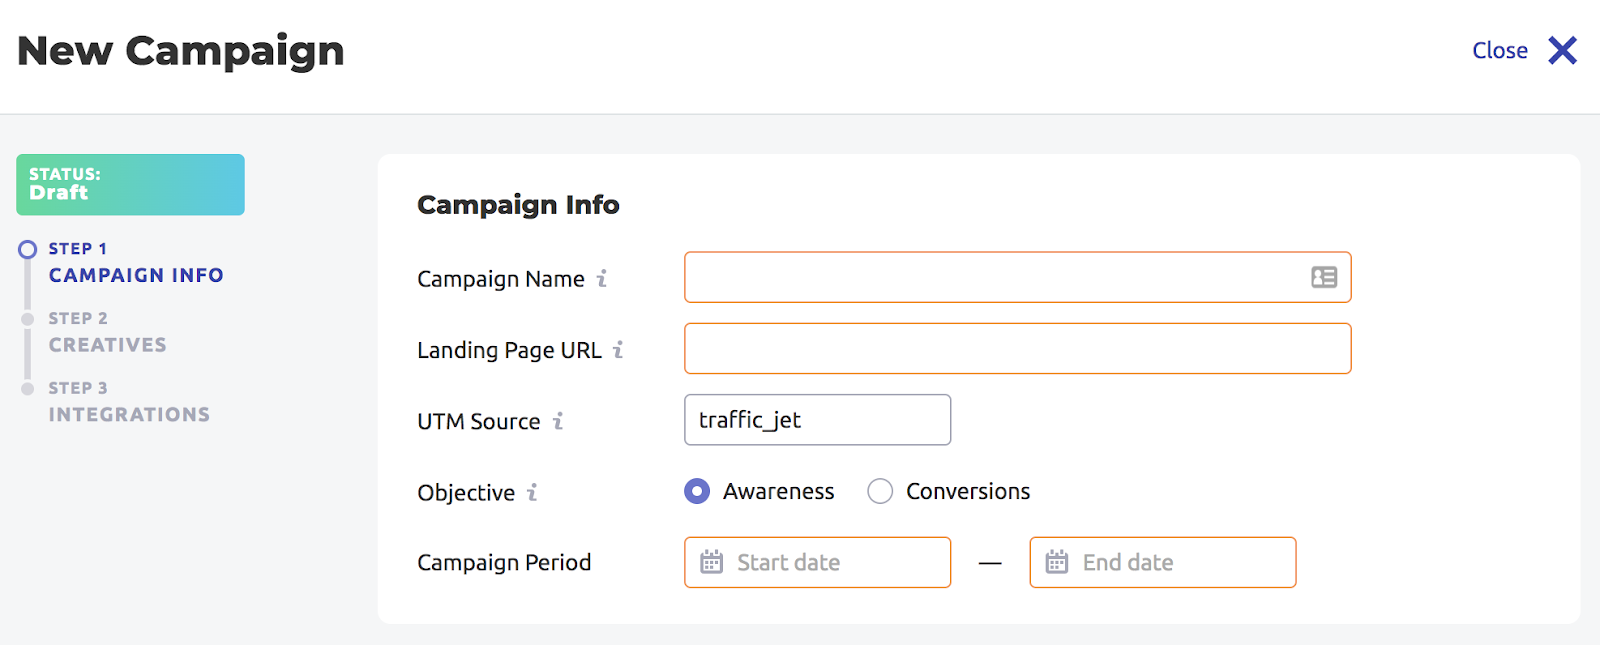 Traffic Jet - High-Converting and Transparent Traffic for Your Website